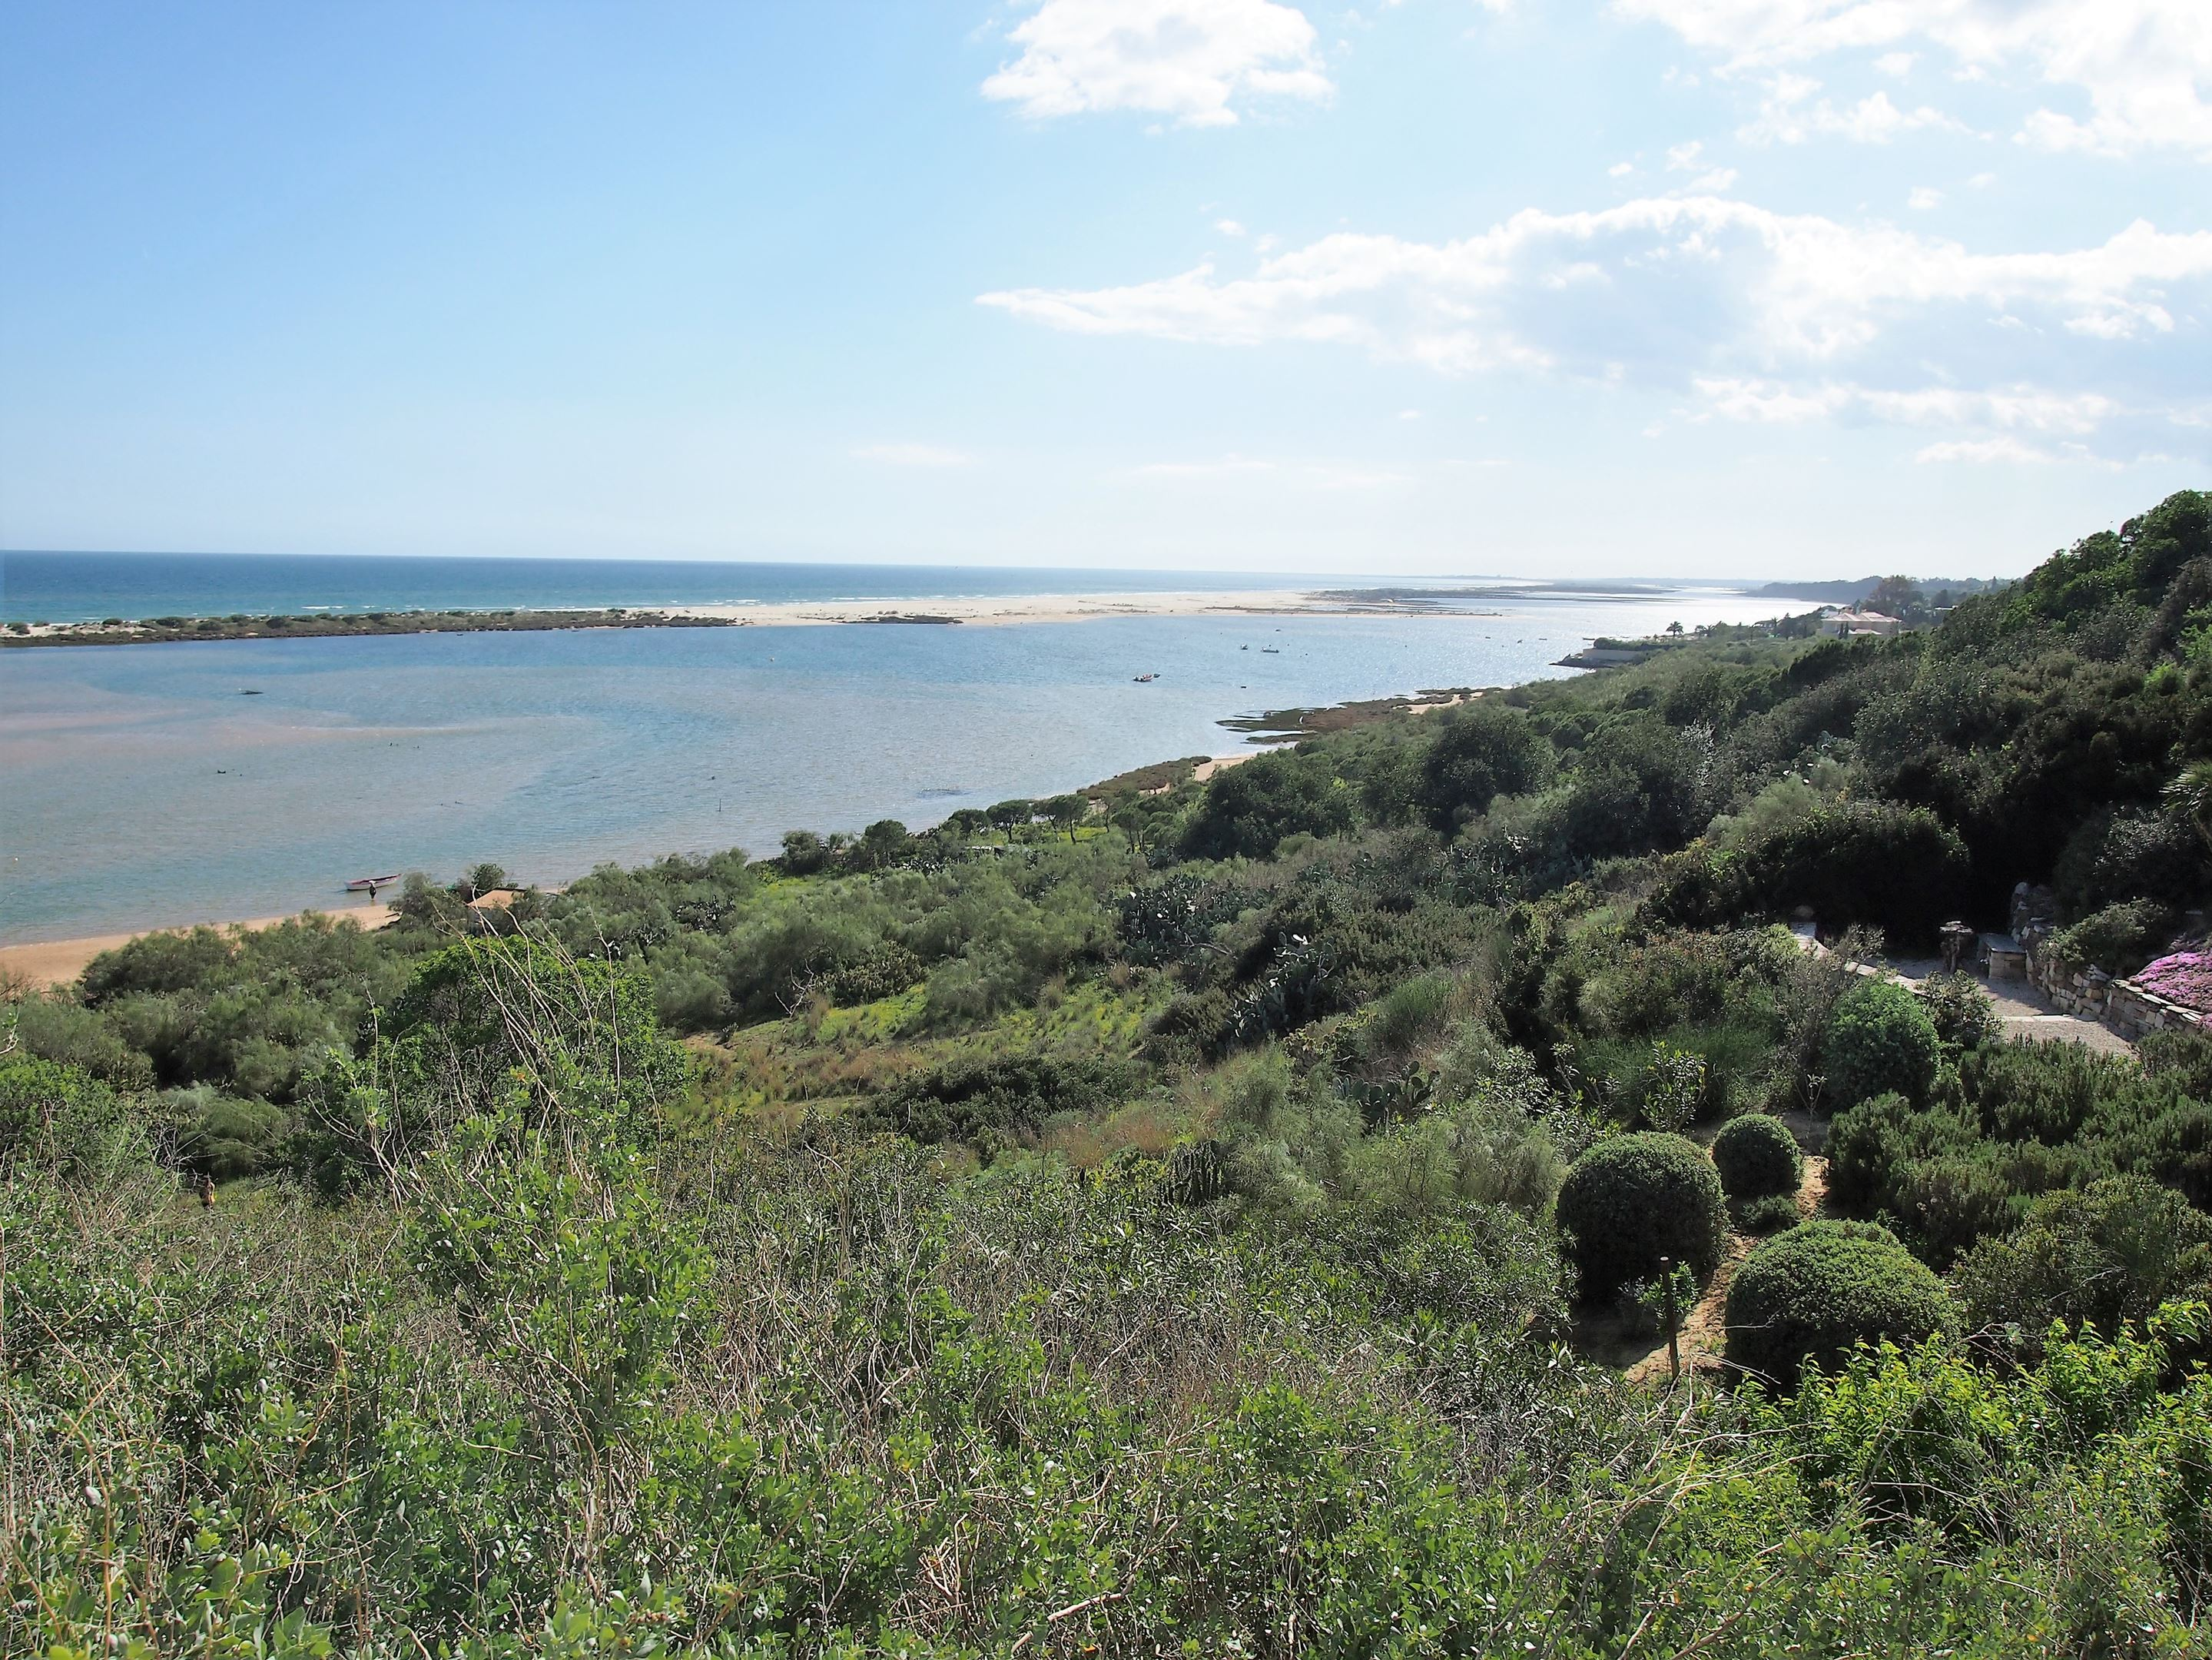 Views from Cacela Velha over the Ria Formosa looking west